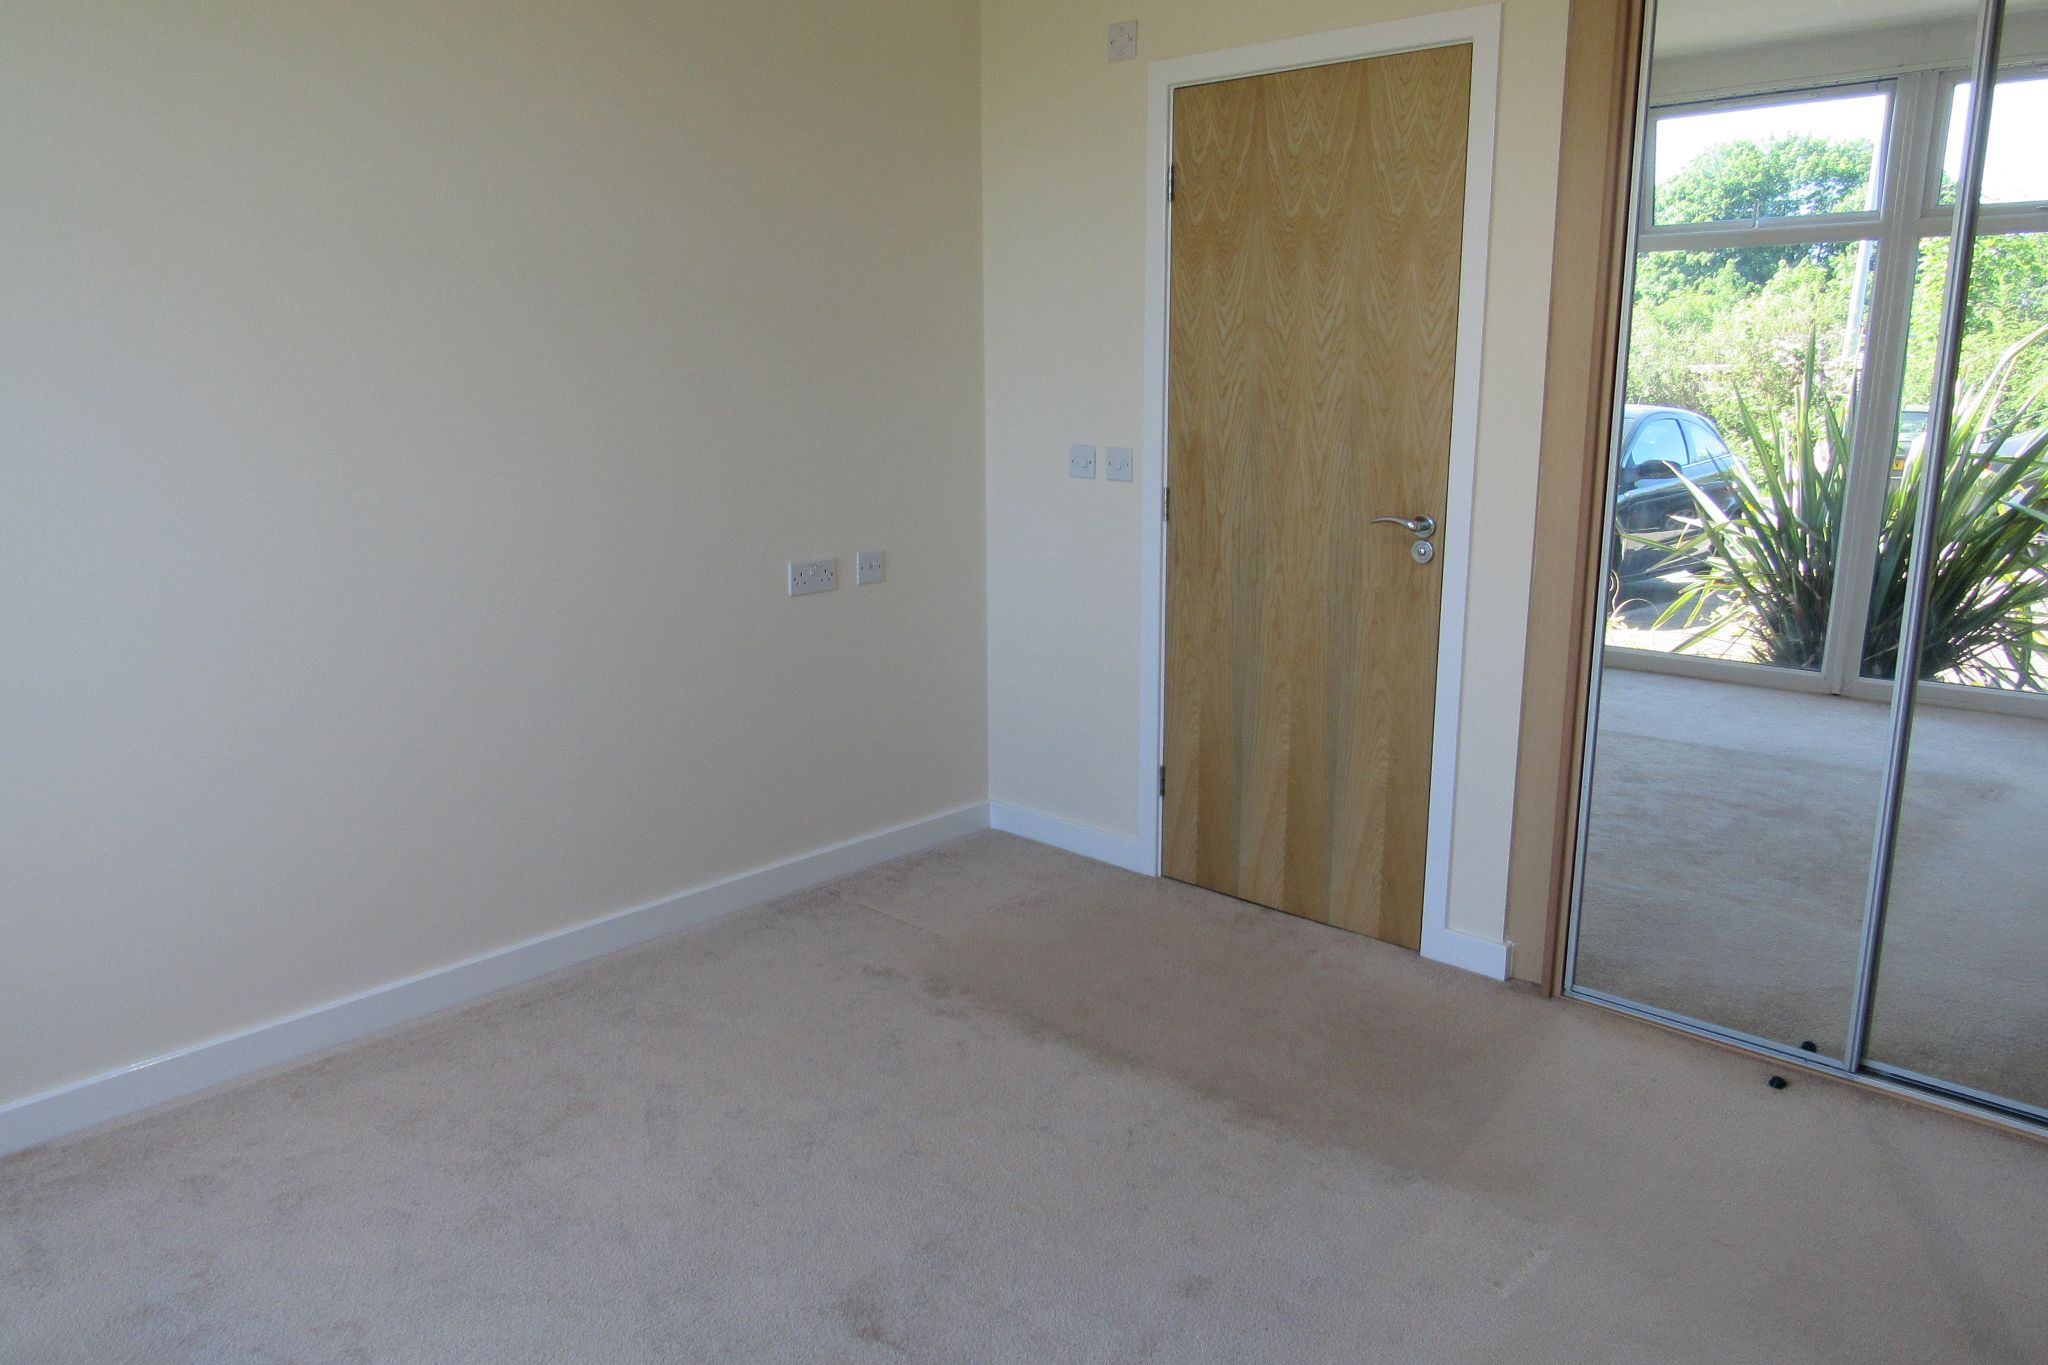 2 bedroom apartment flat/apartment For Sale in Manchester - Photograph 8.